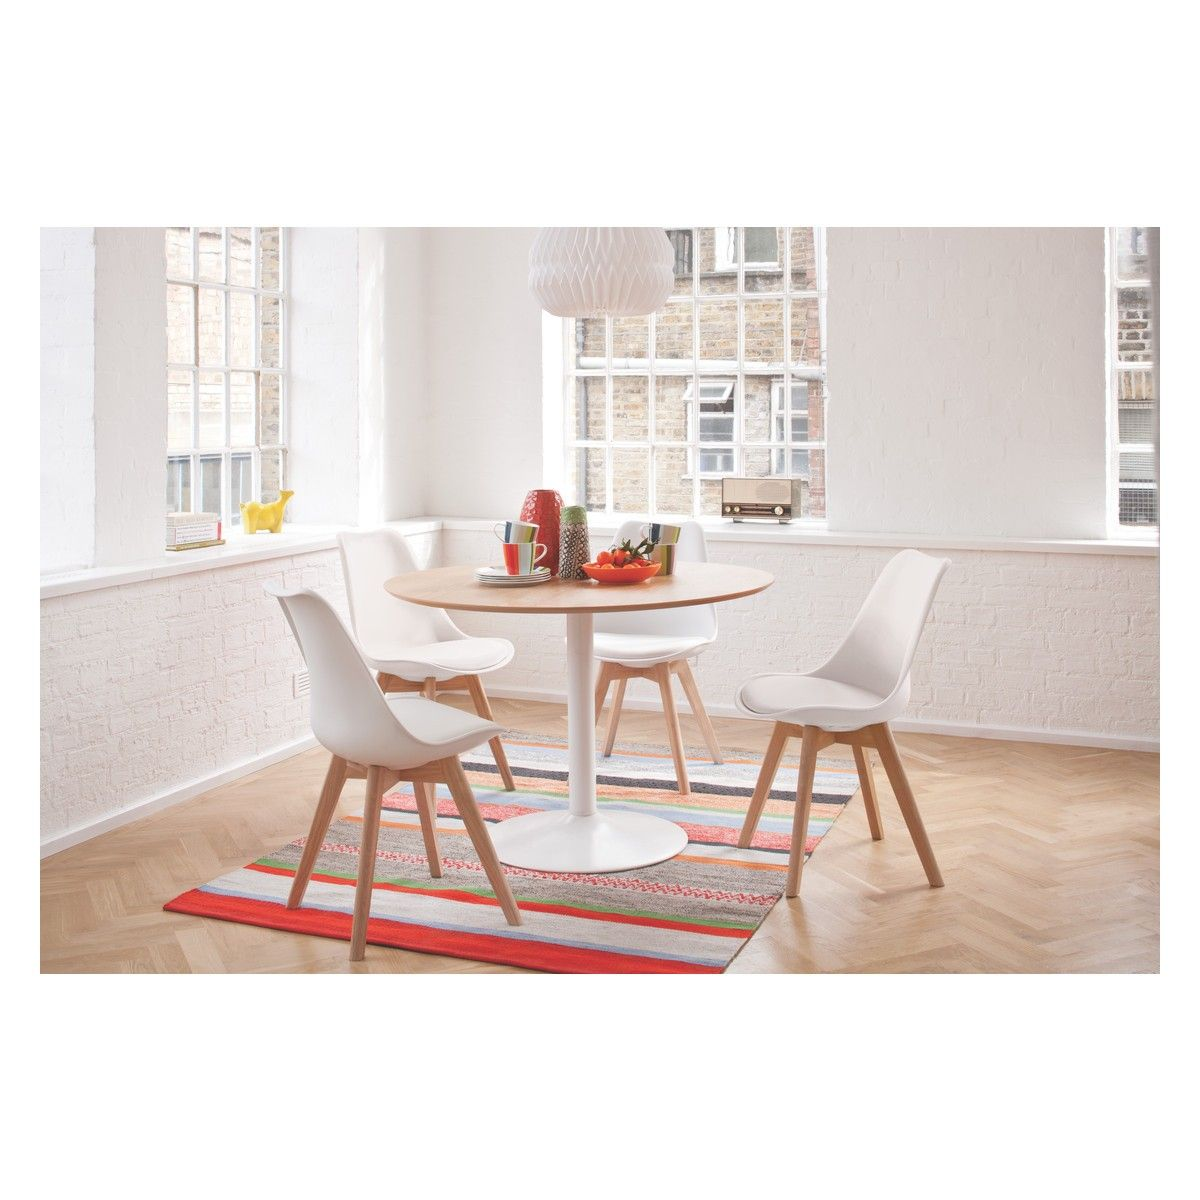 LANCE Dining set with oak table and 4 Jerry white chairs | Dining ...